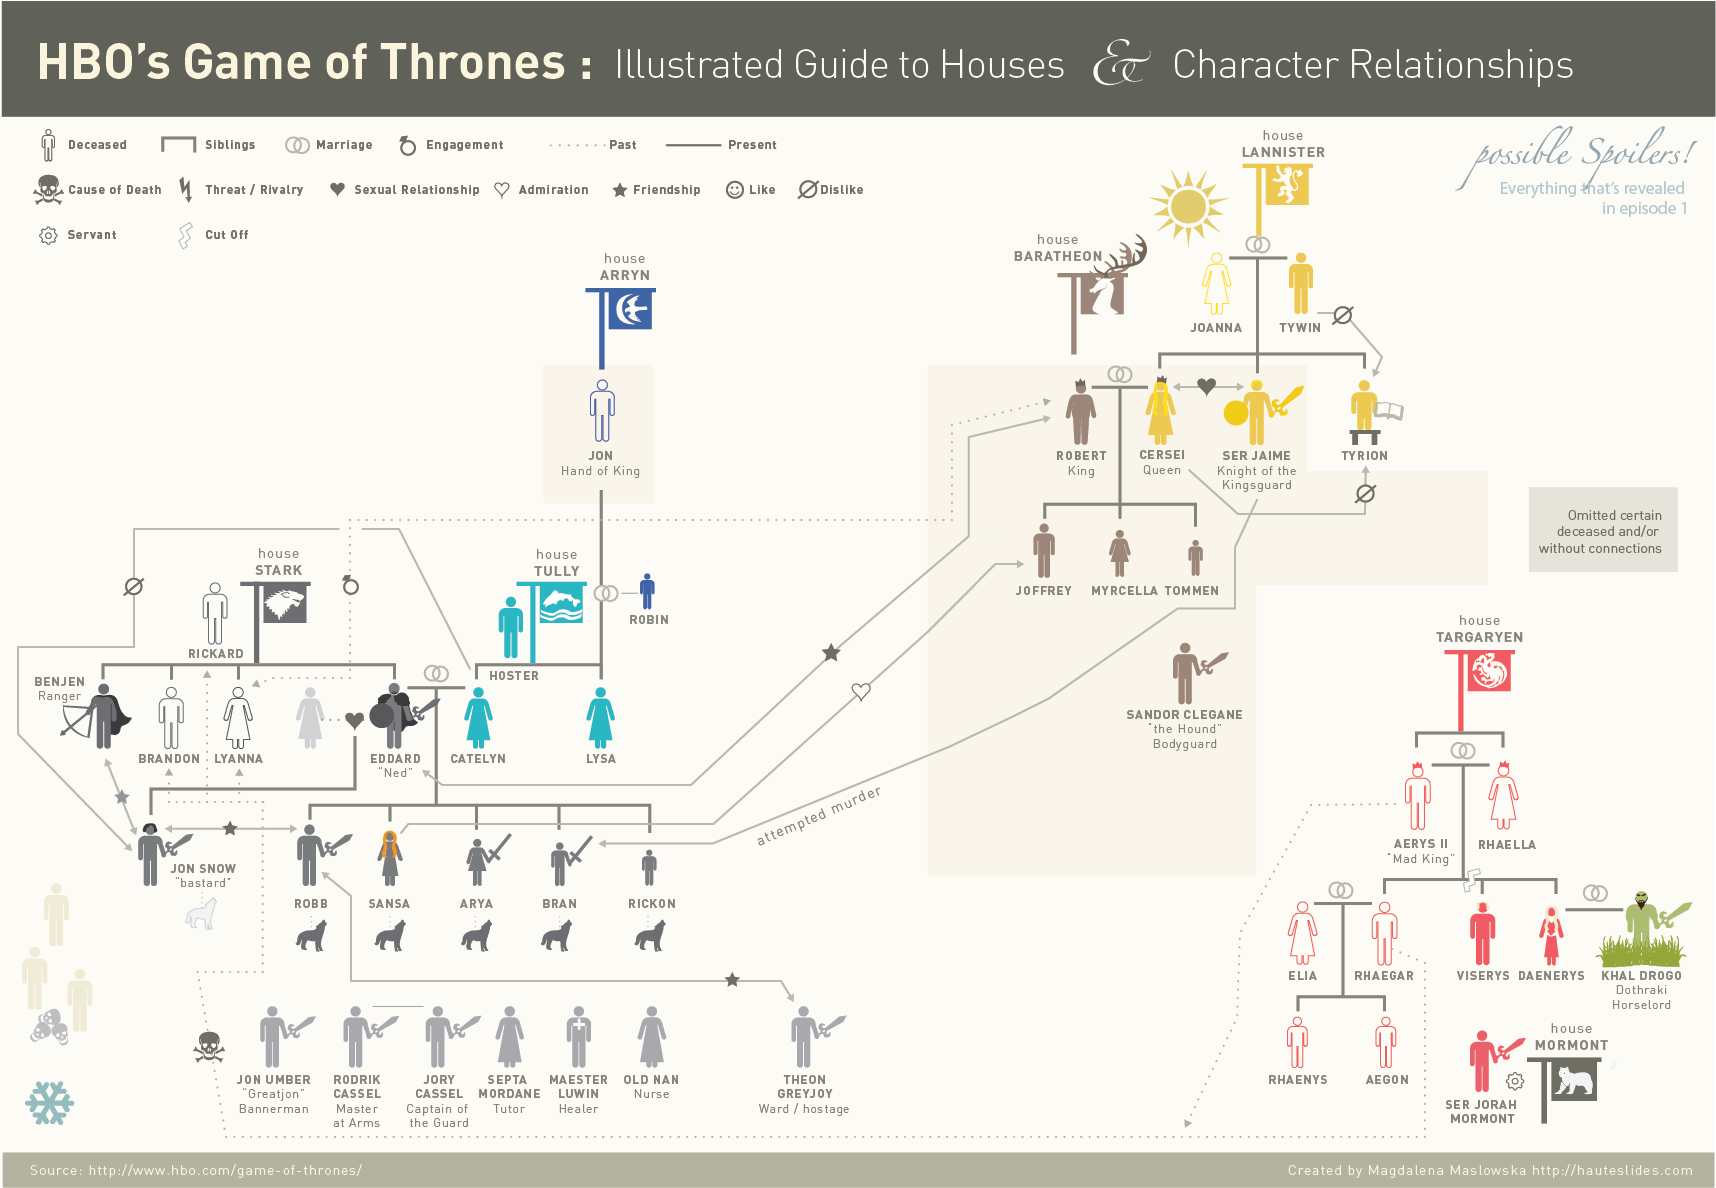 Hbos Season 1 Game Of Thrones Illustrated Guide To Houses